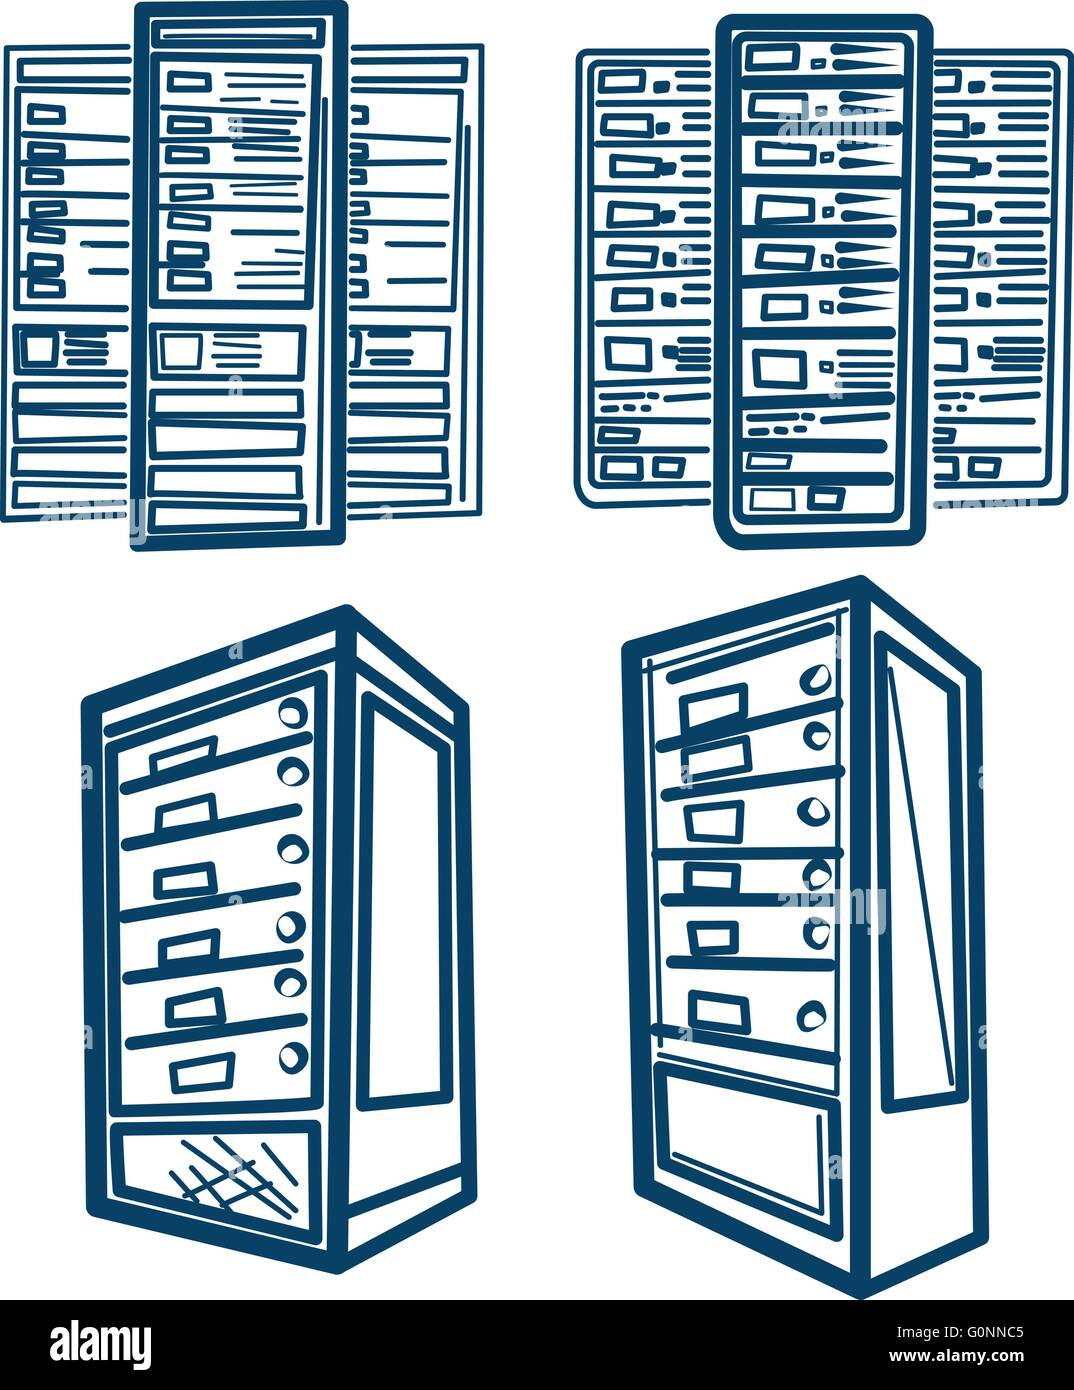 Sketch style Vector of Server Rack. Outline version. - Stock Image